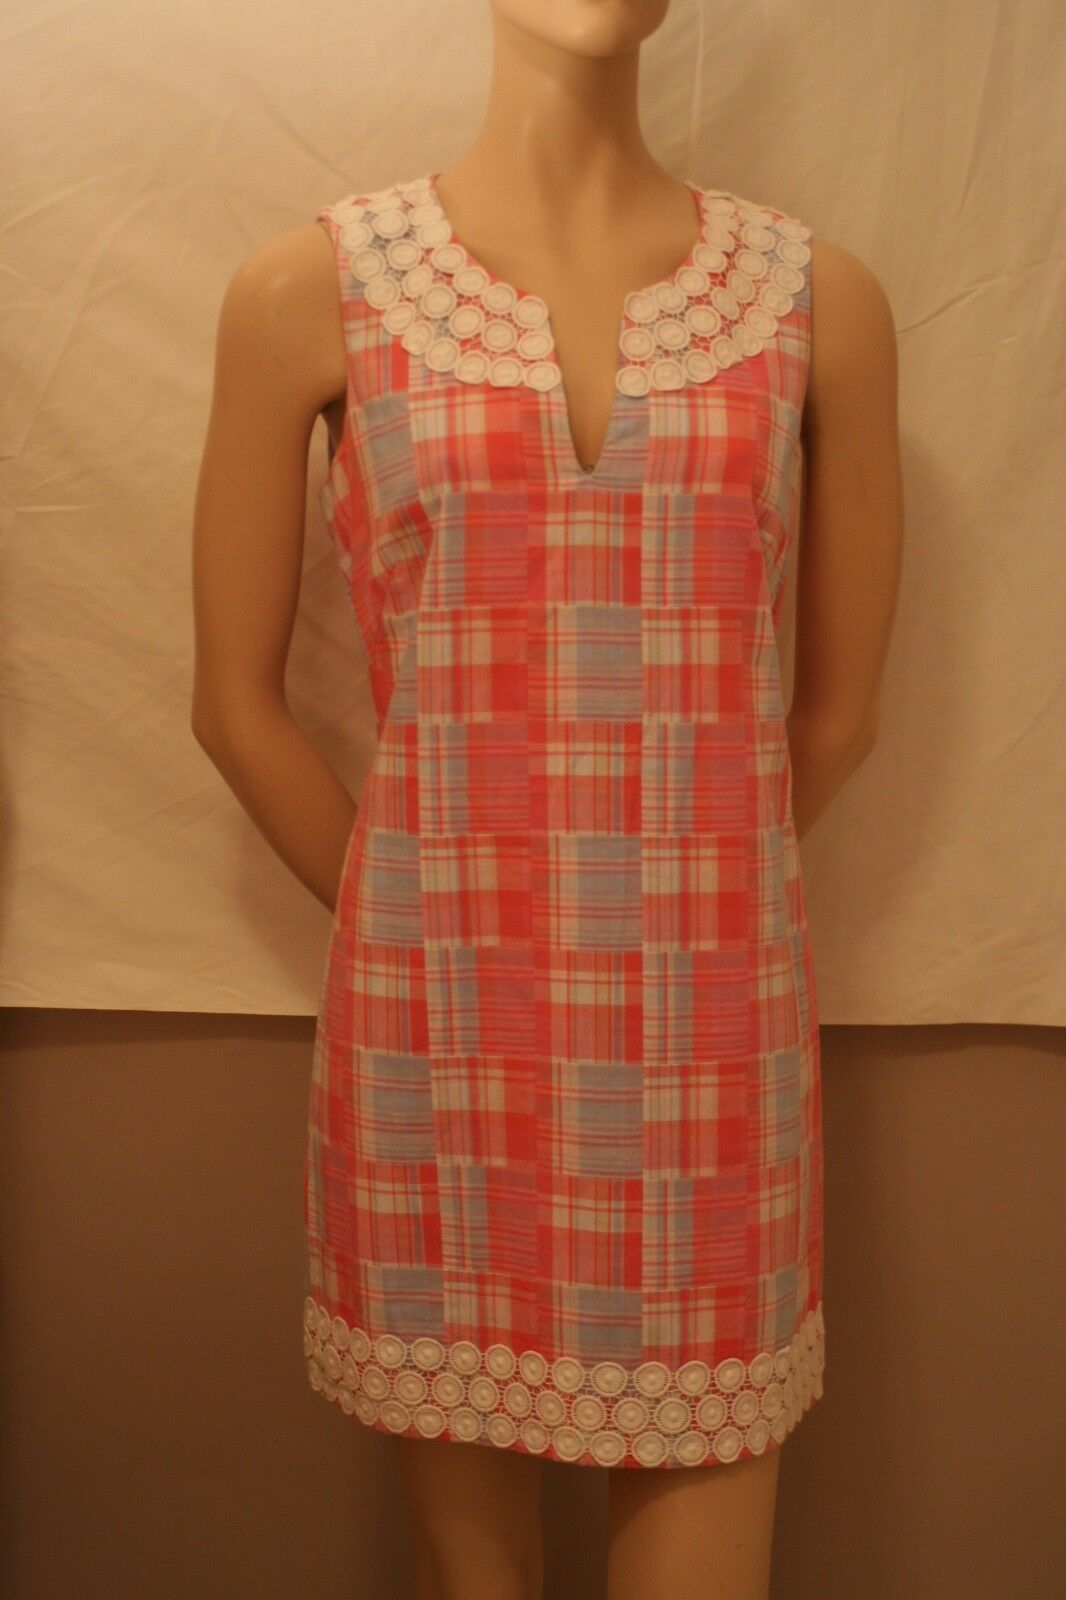 Vineyard Vines Gingham Patterned Dress  Size 6